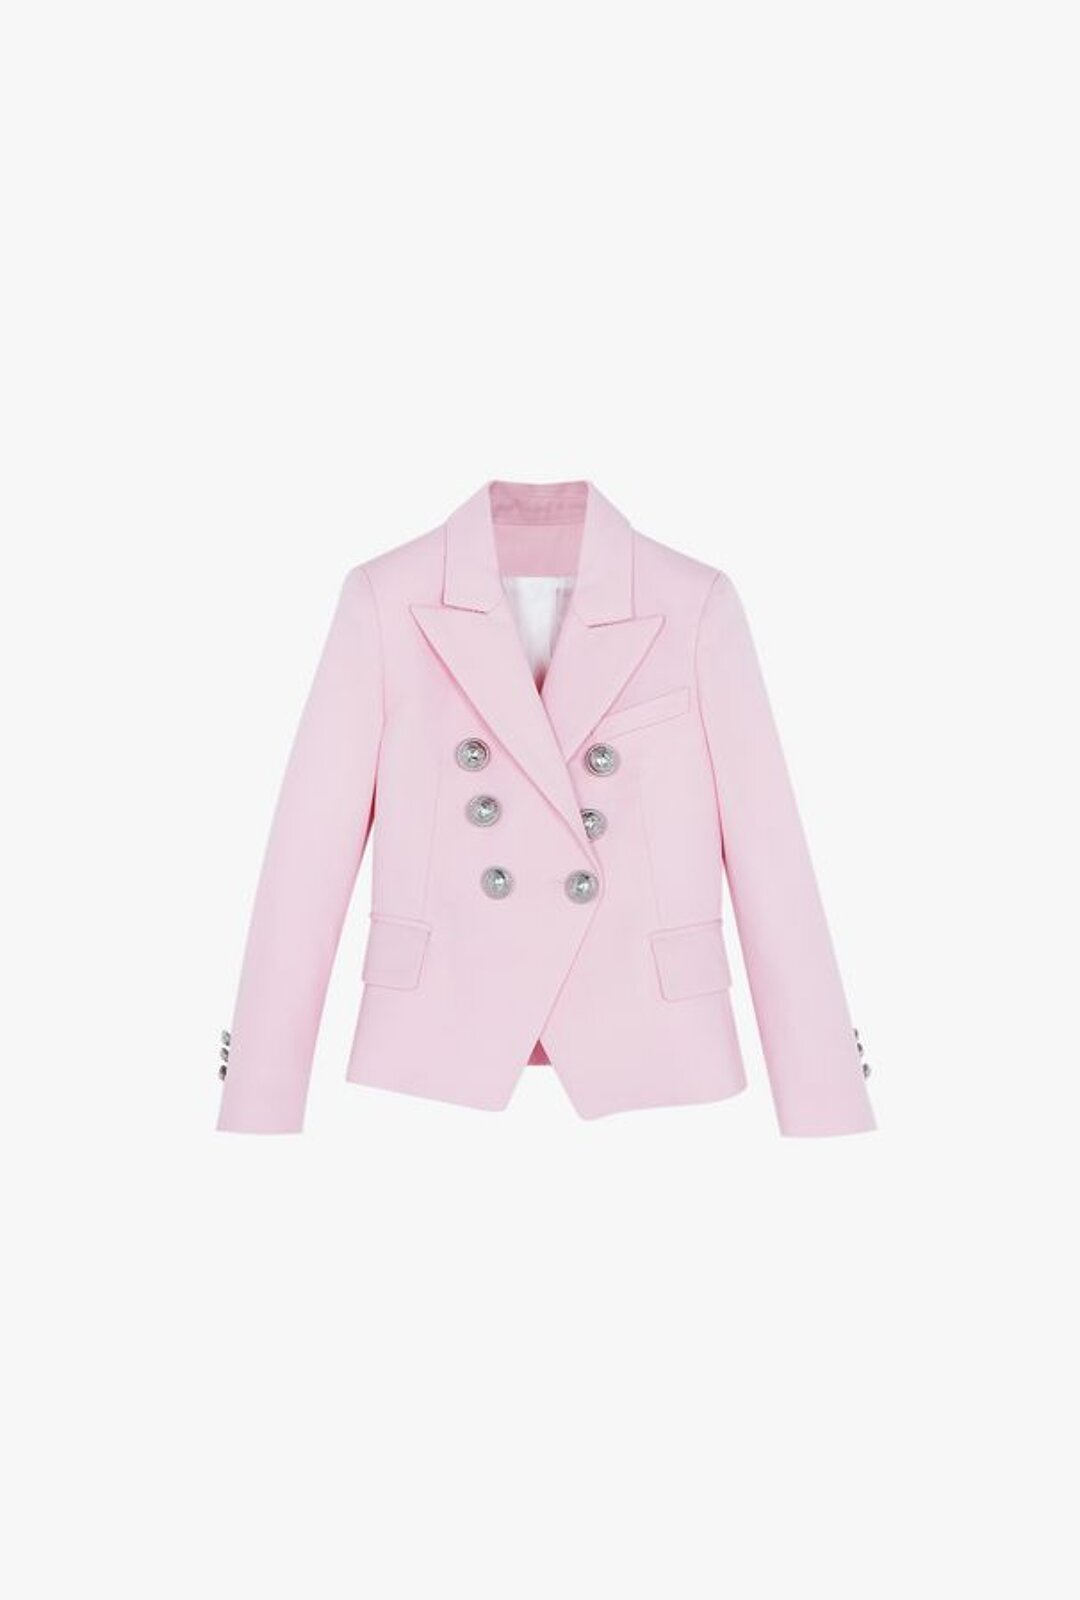 Double-Breasted Pink Wool Blazer With Silver Buttons - Balmain Junior